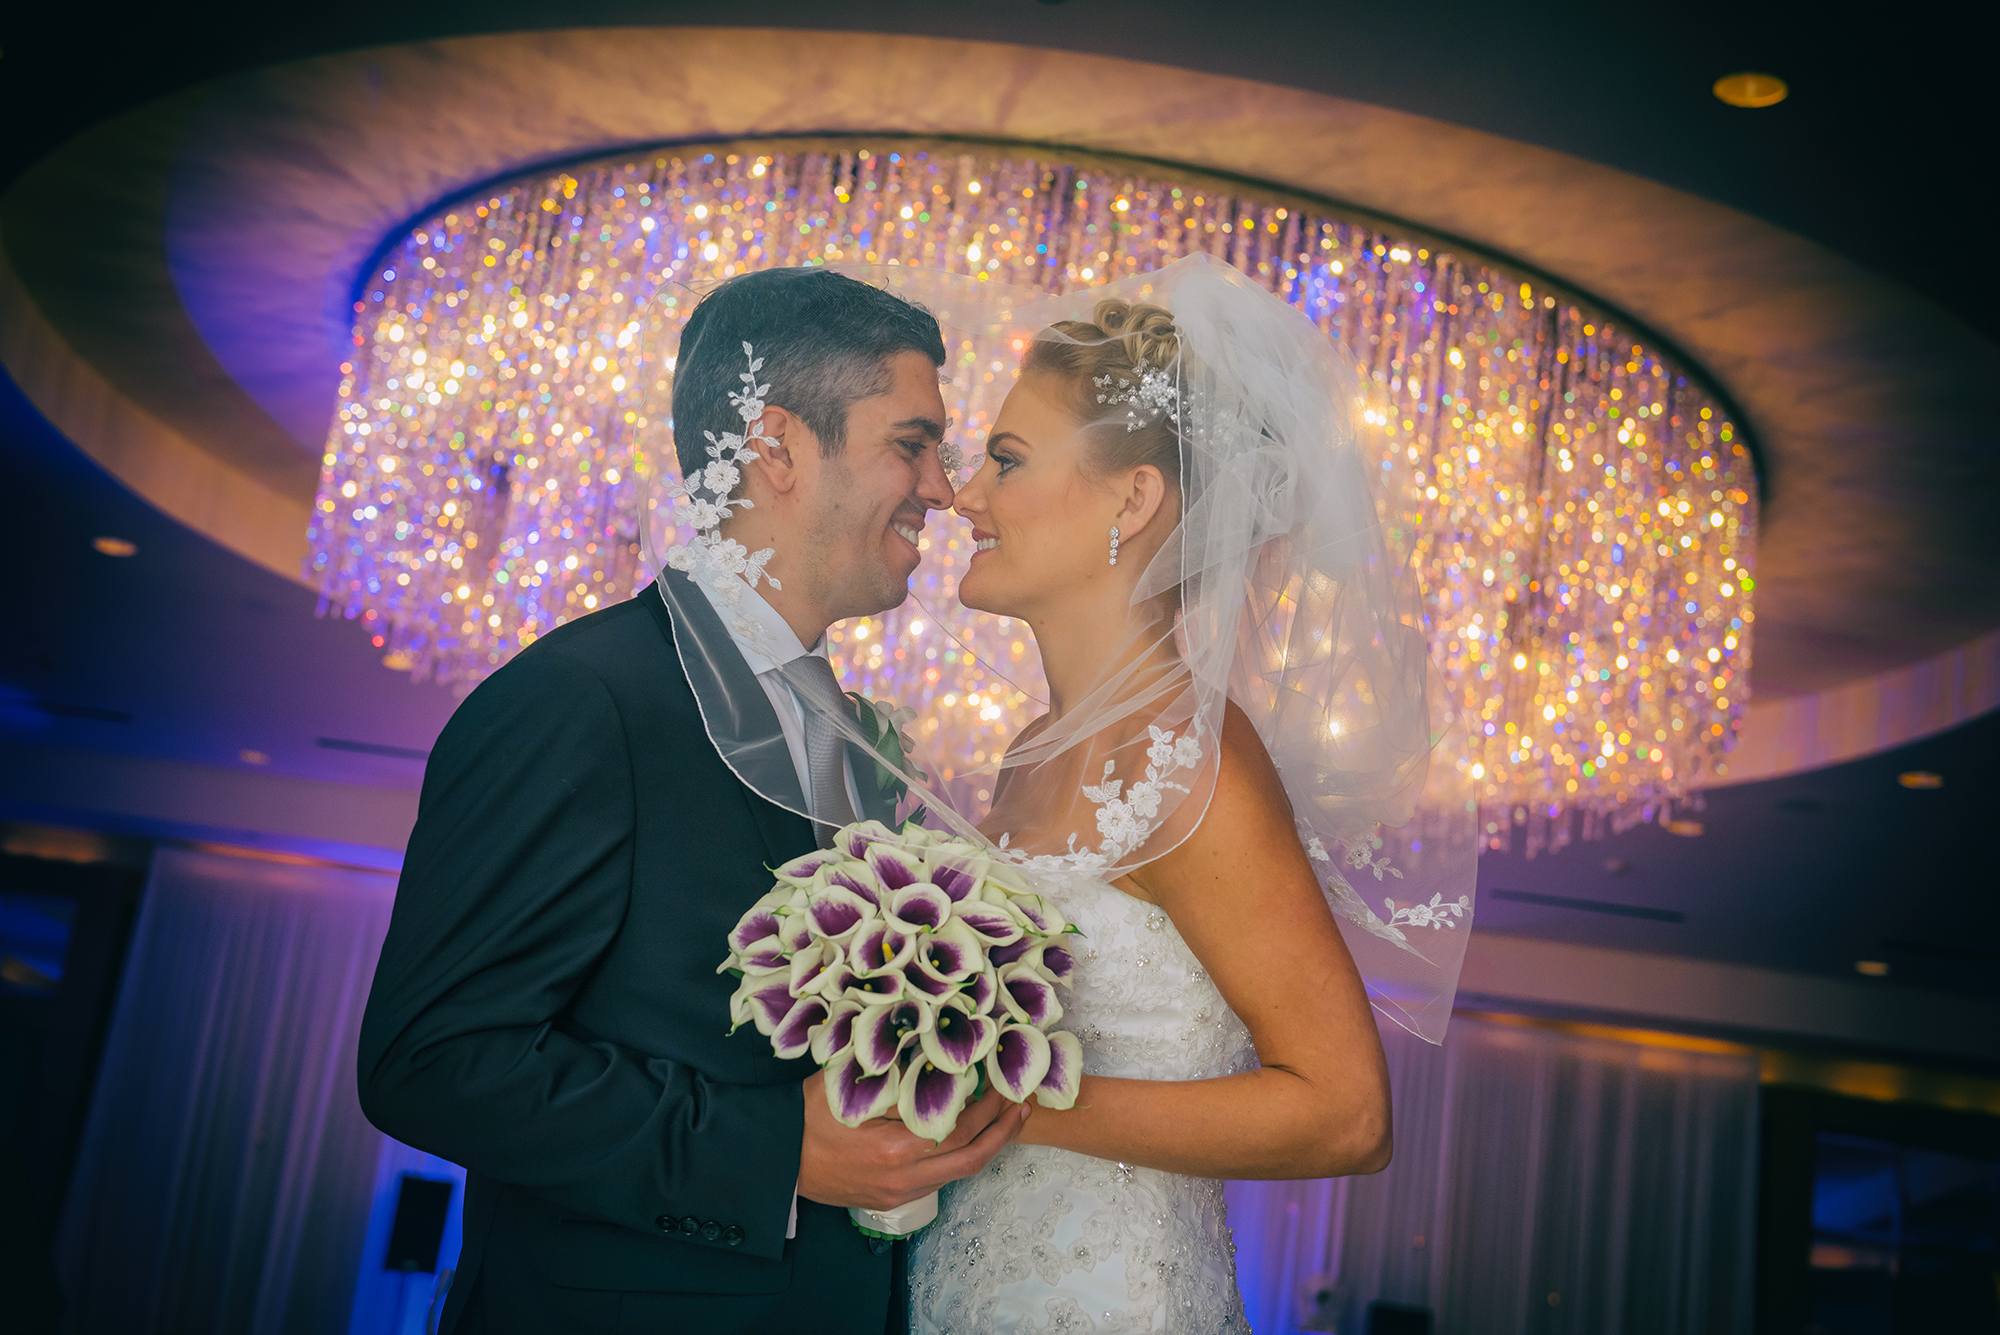 ritz-carlton-florida-wedding-jeffkolodny-photography-26